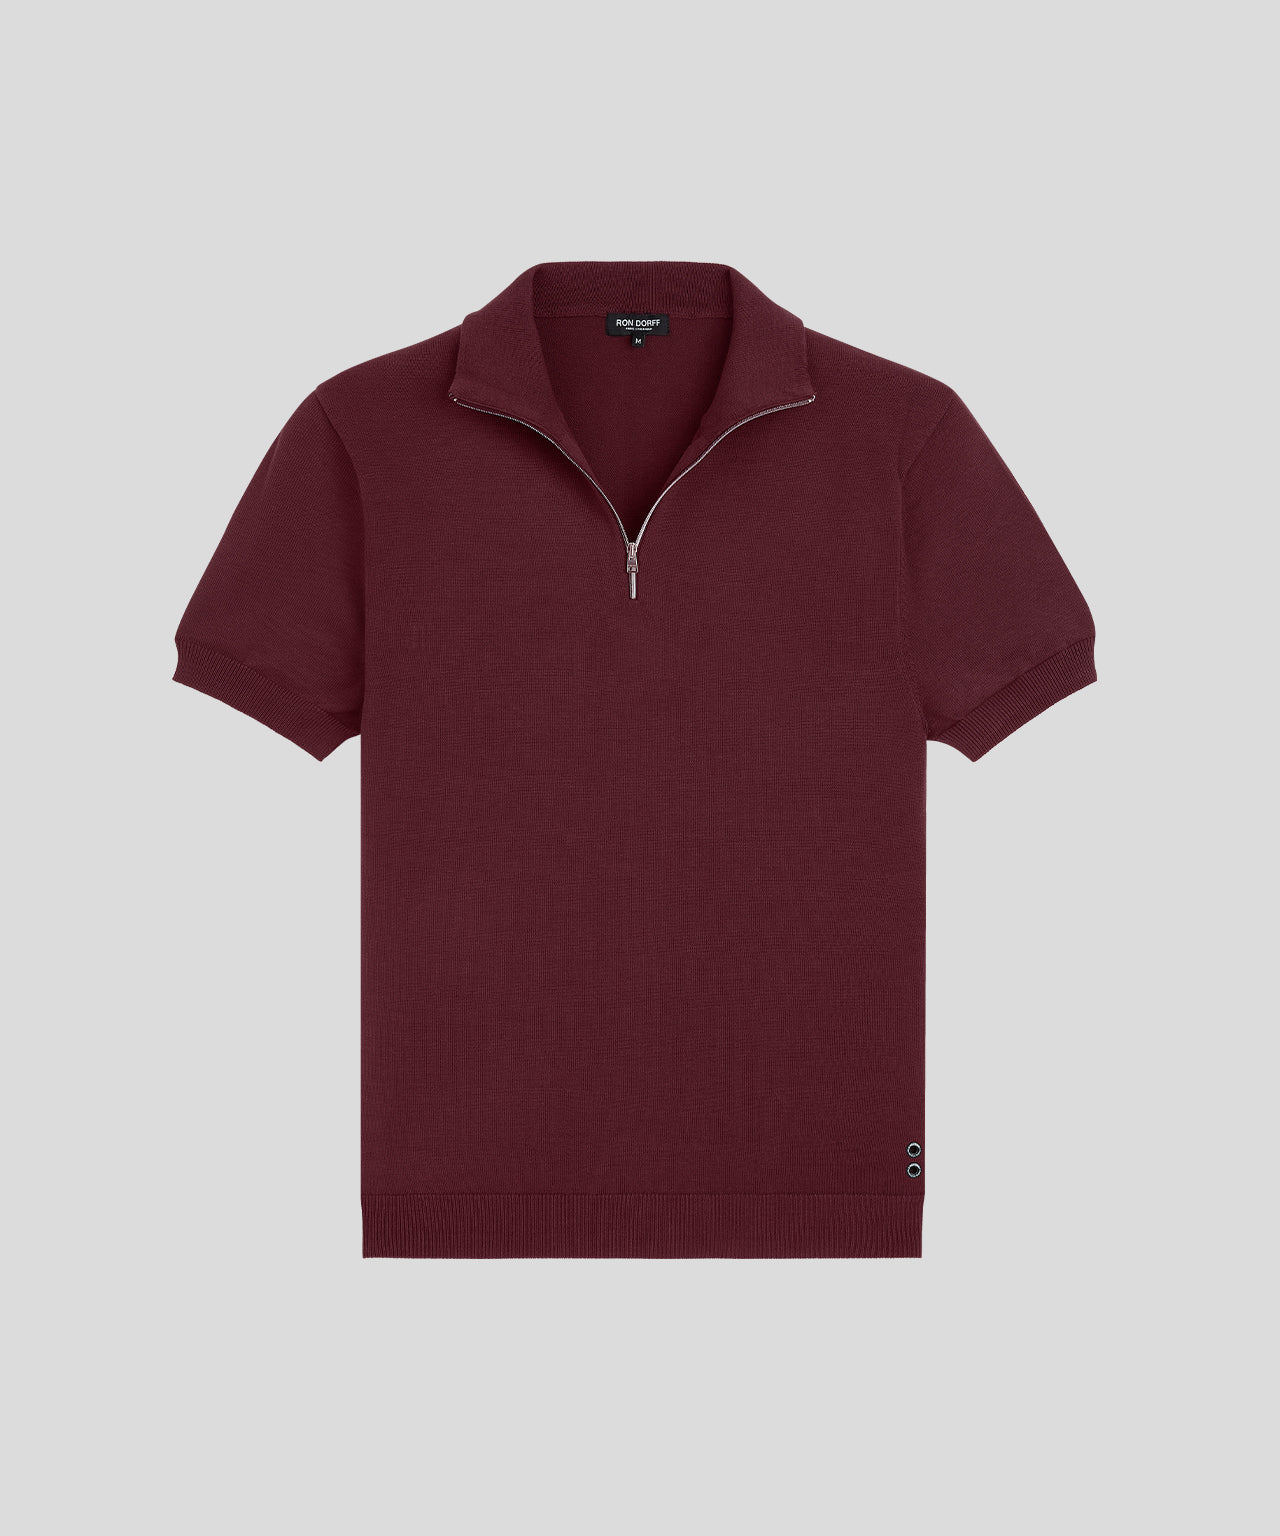 RD Polo - burgundy red